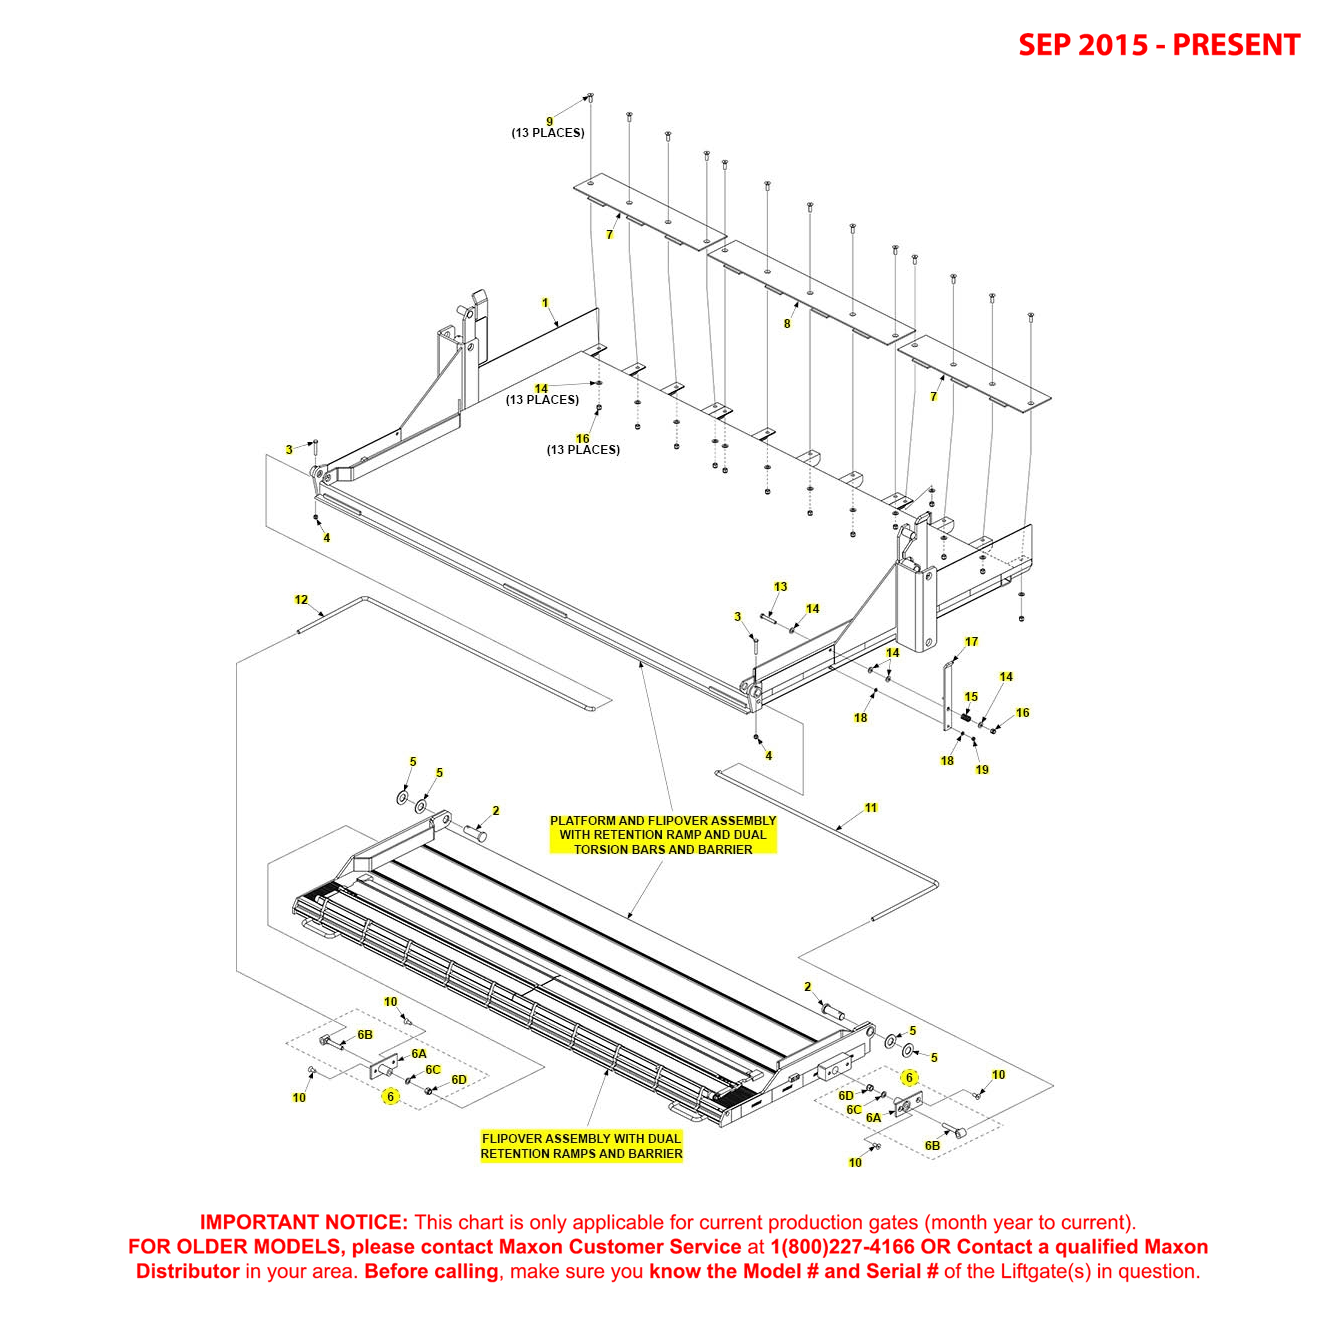 RA (Sep 2015 - Present) Platform And Flipover Assembly With Retention Ramp / Dual Torsion Bars / Barrier